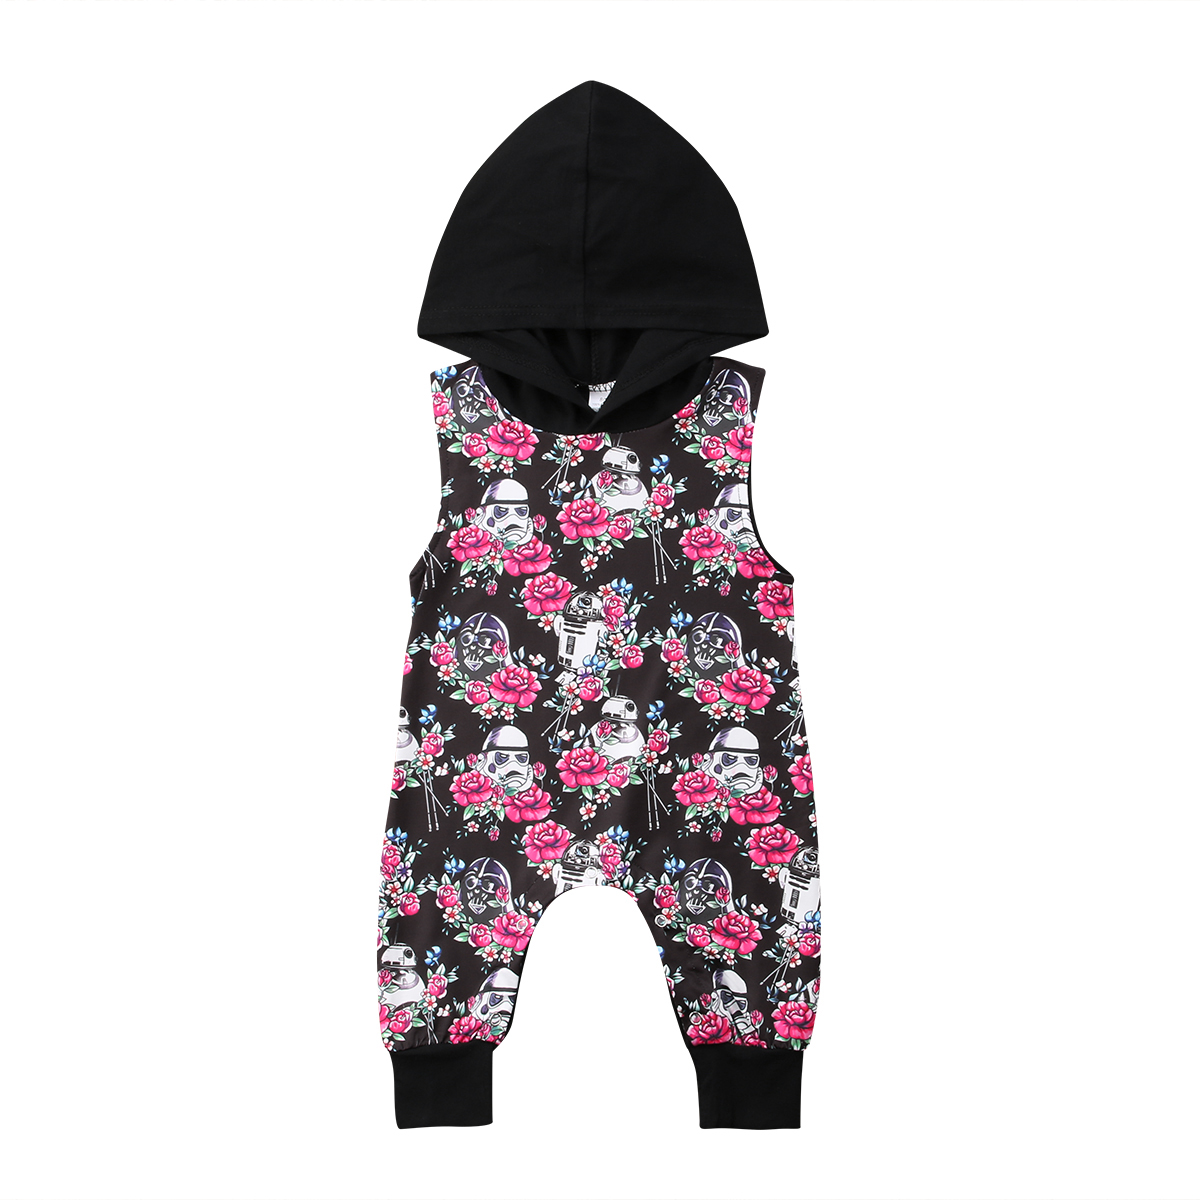 Infant Kids Toddle Baby Girls Sleeveless Floral Cotton Romper Hooded Jumpsuit Playsuit Sunsuit Outfit Clothes Baby Girl 0-3T